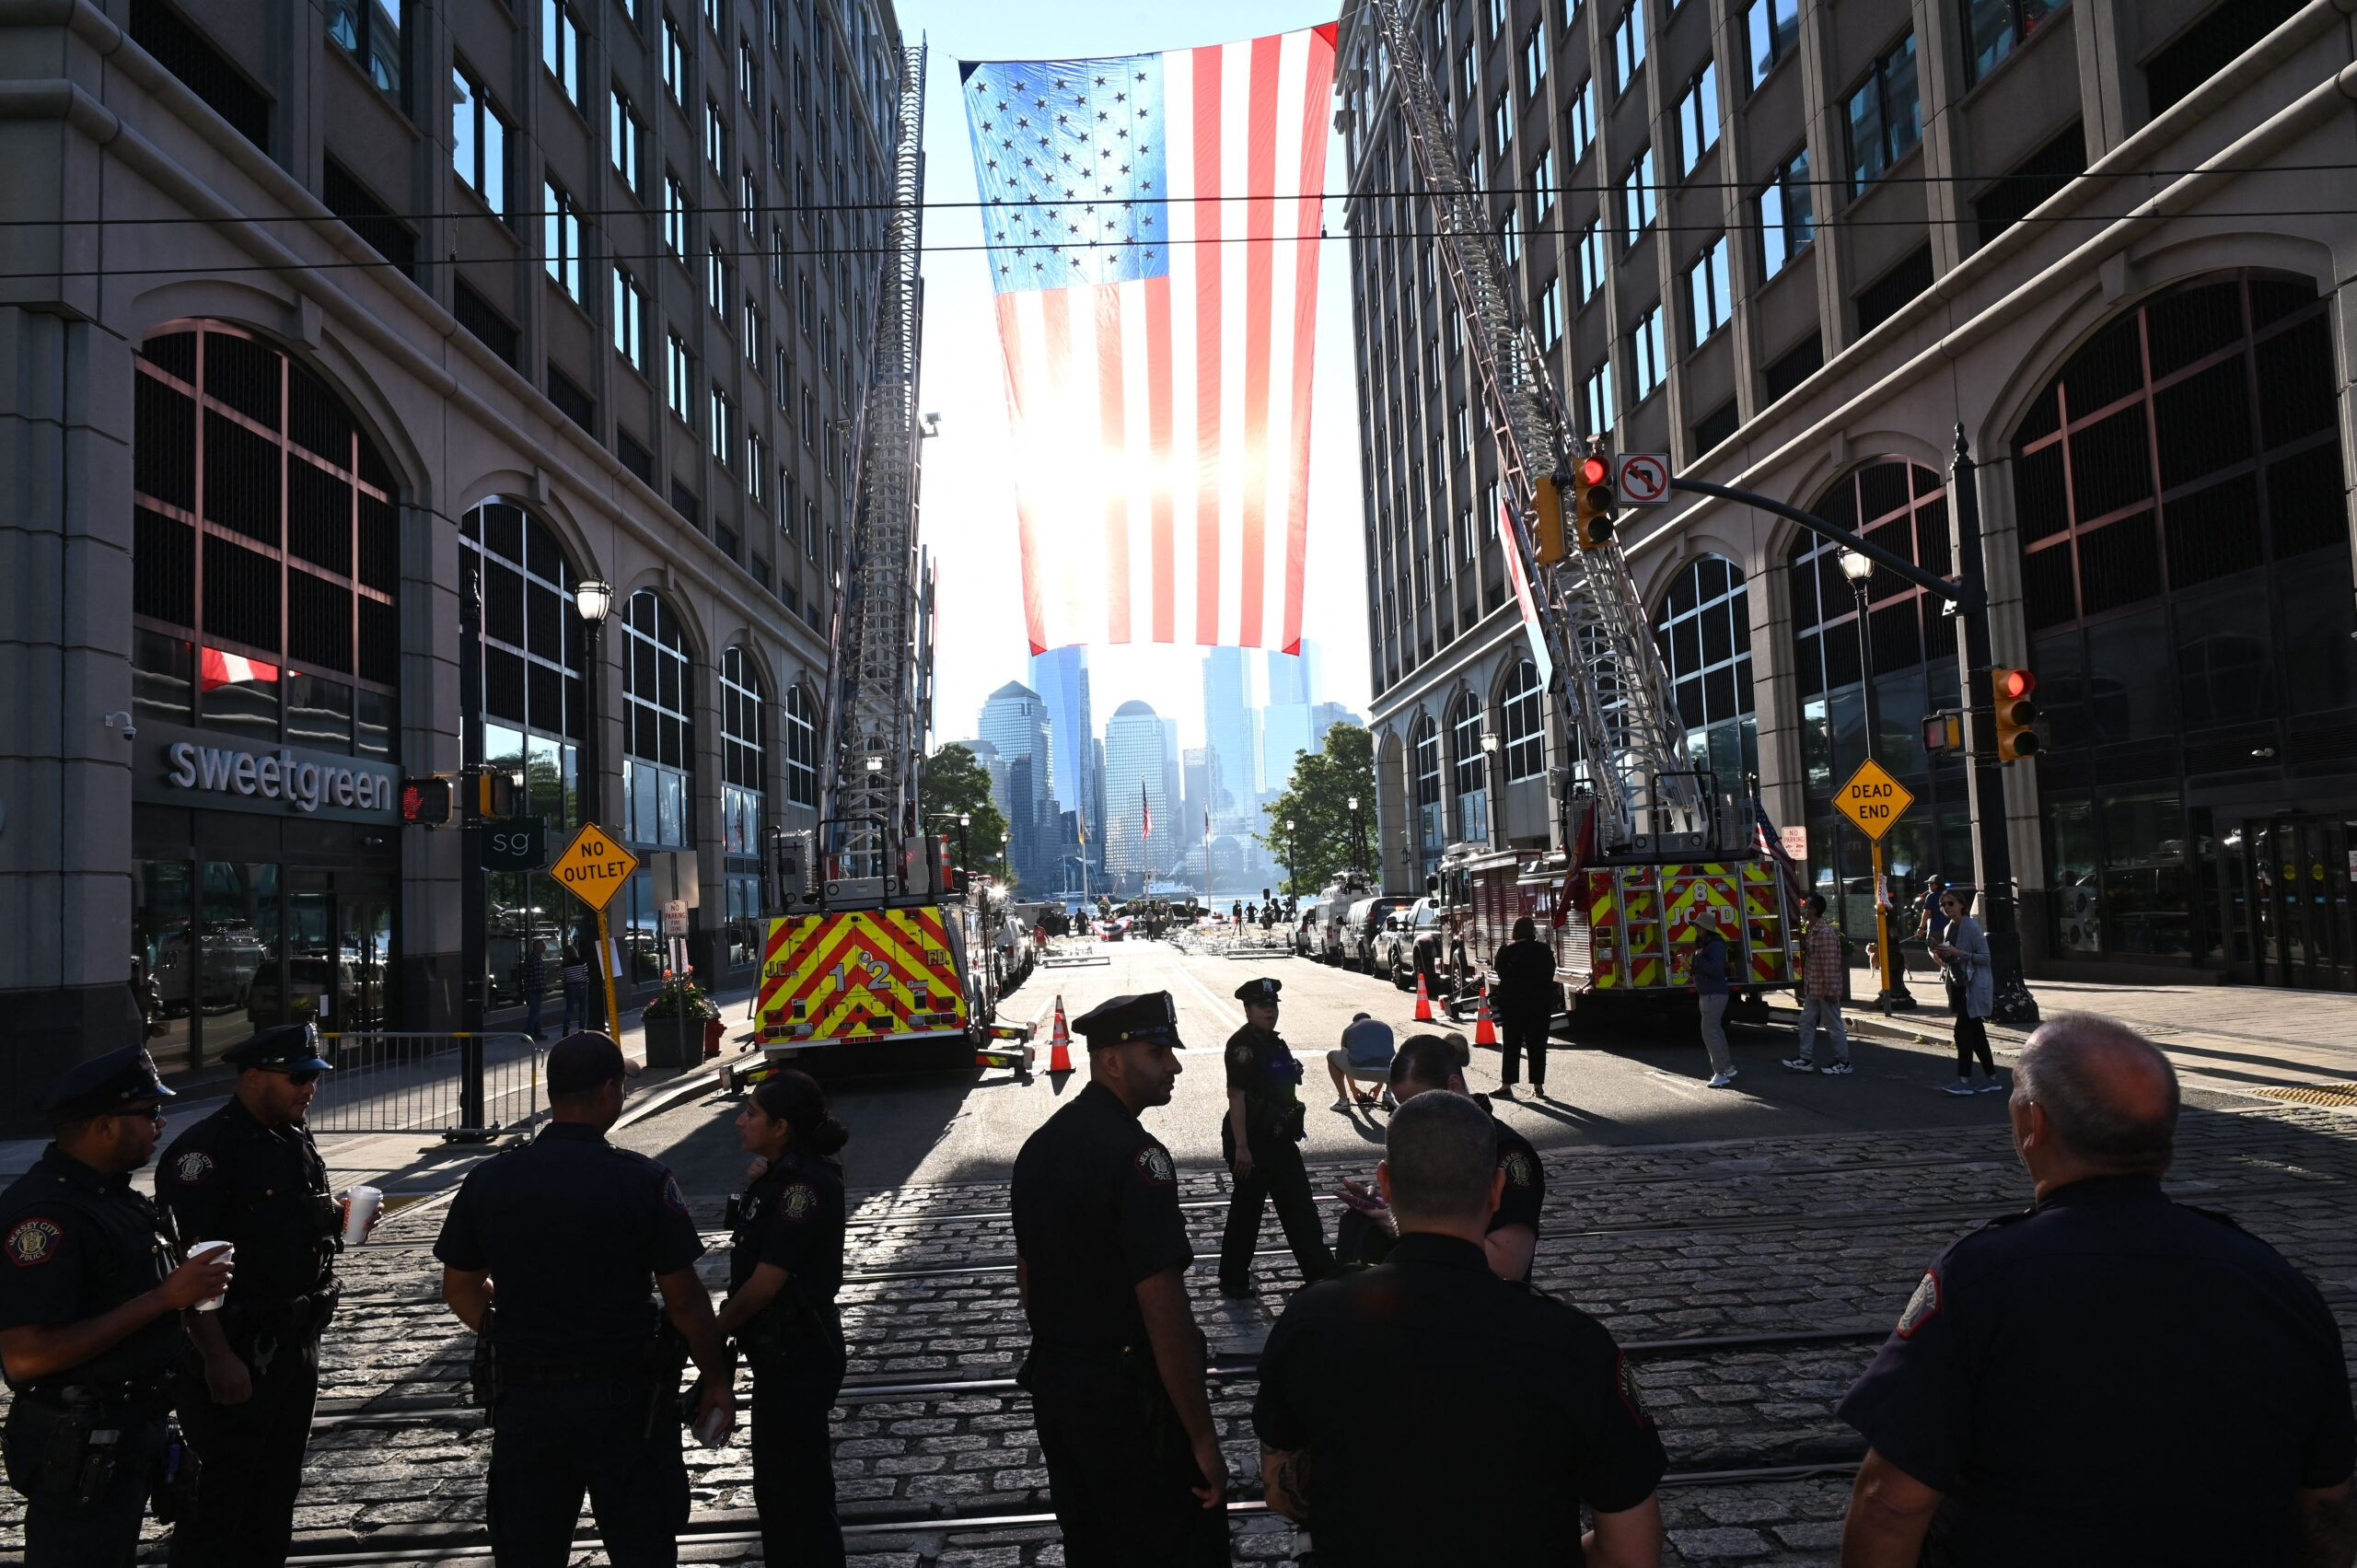 Firefighters from the New Jersey Fire Department march near an oversized American flag hoisted near the Hudson River.